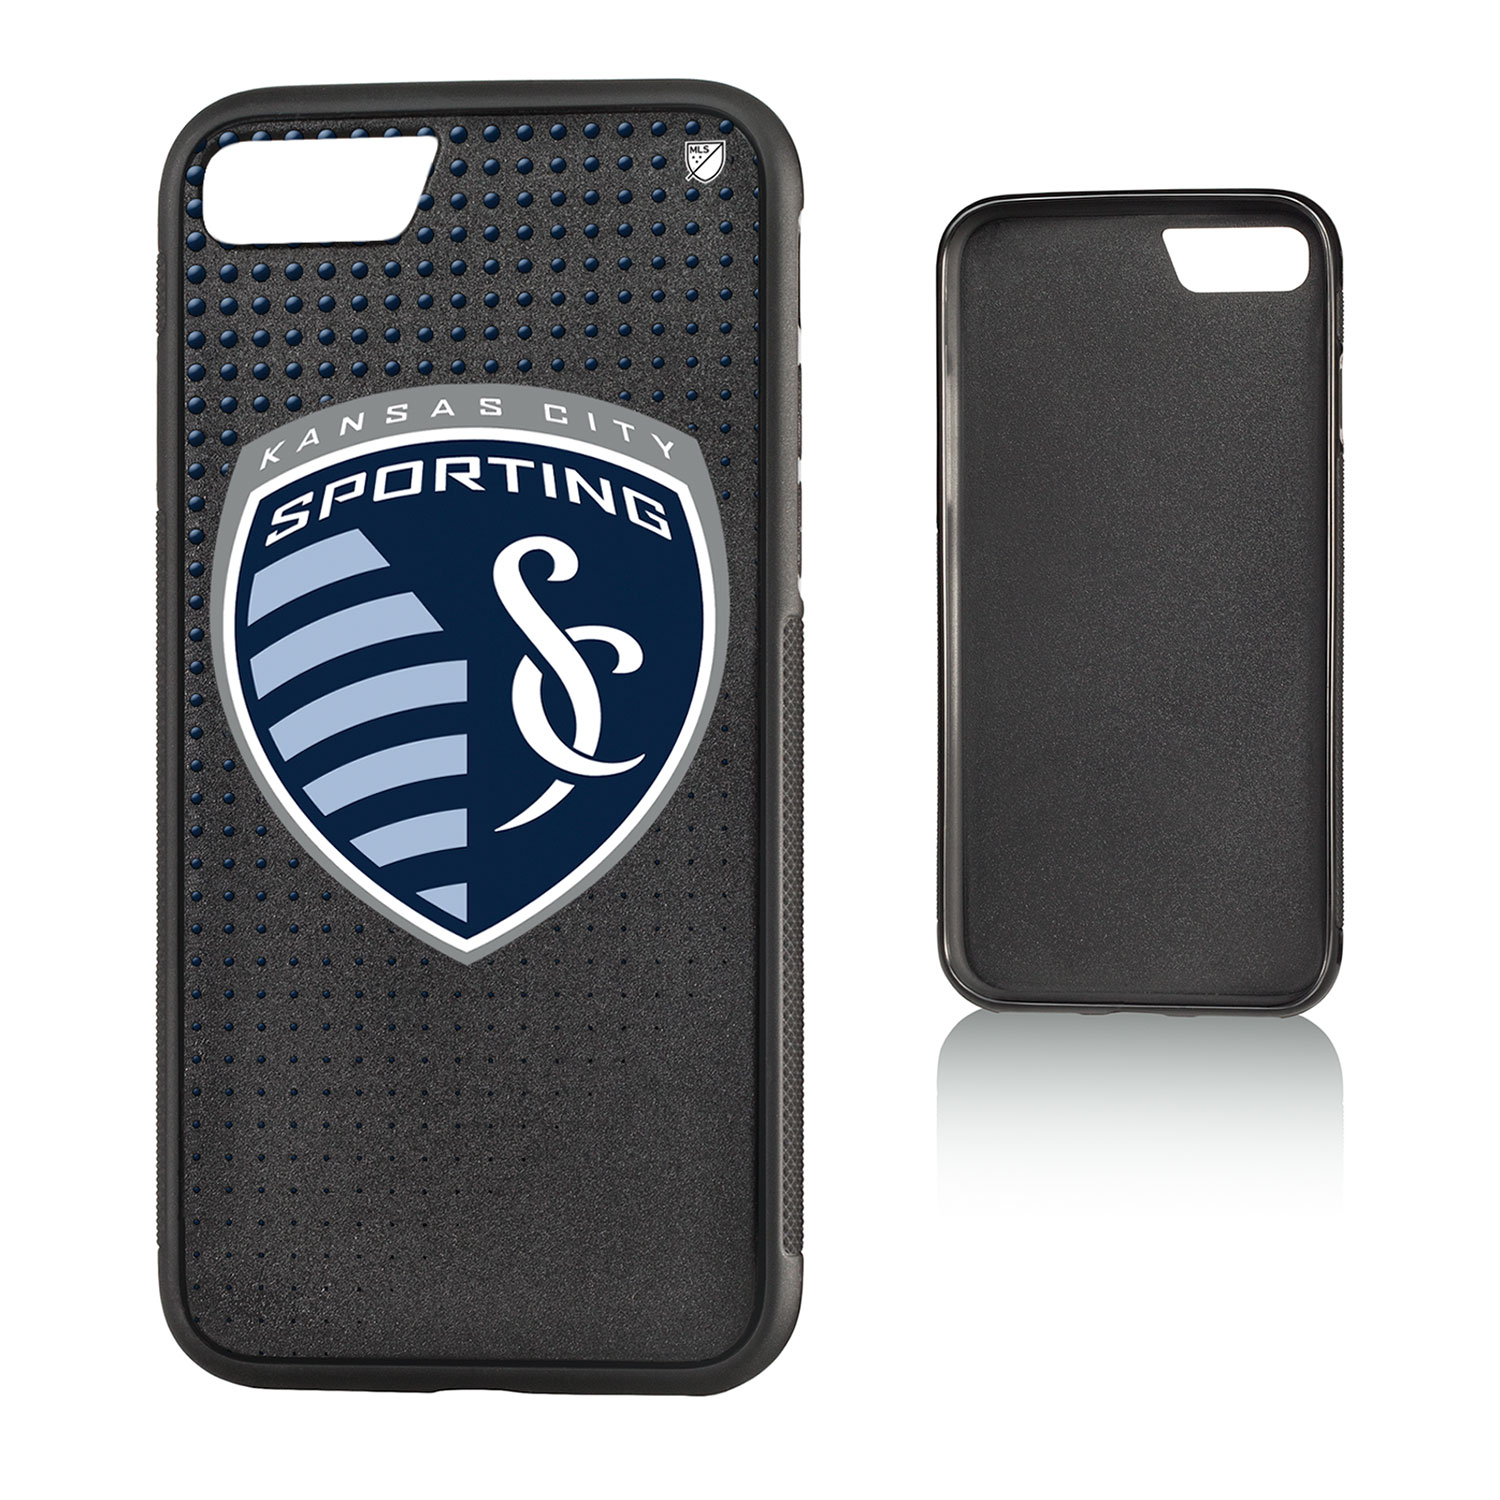 Sporting Kansas City SPORTING Dots Bump Case for iPhone 8 / 7